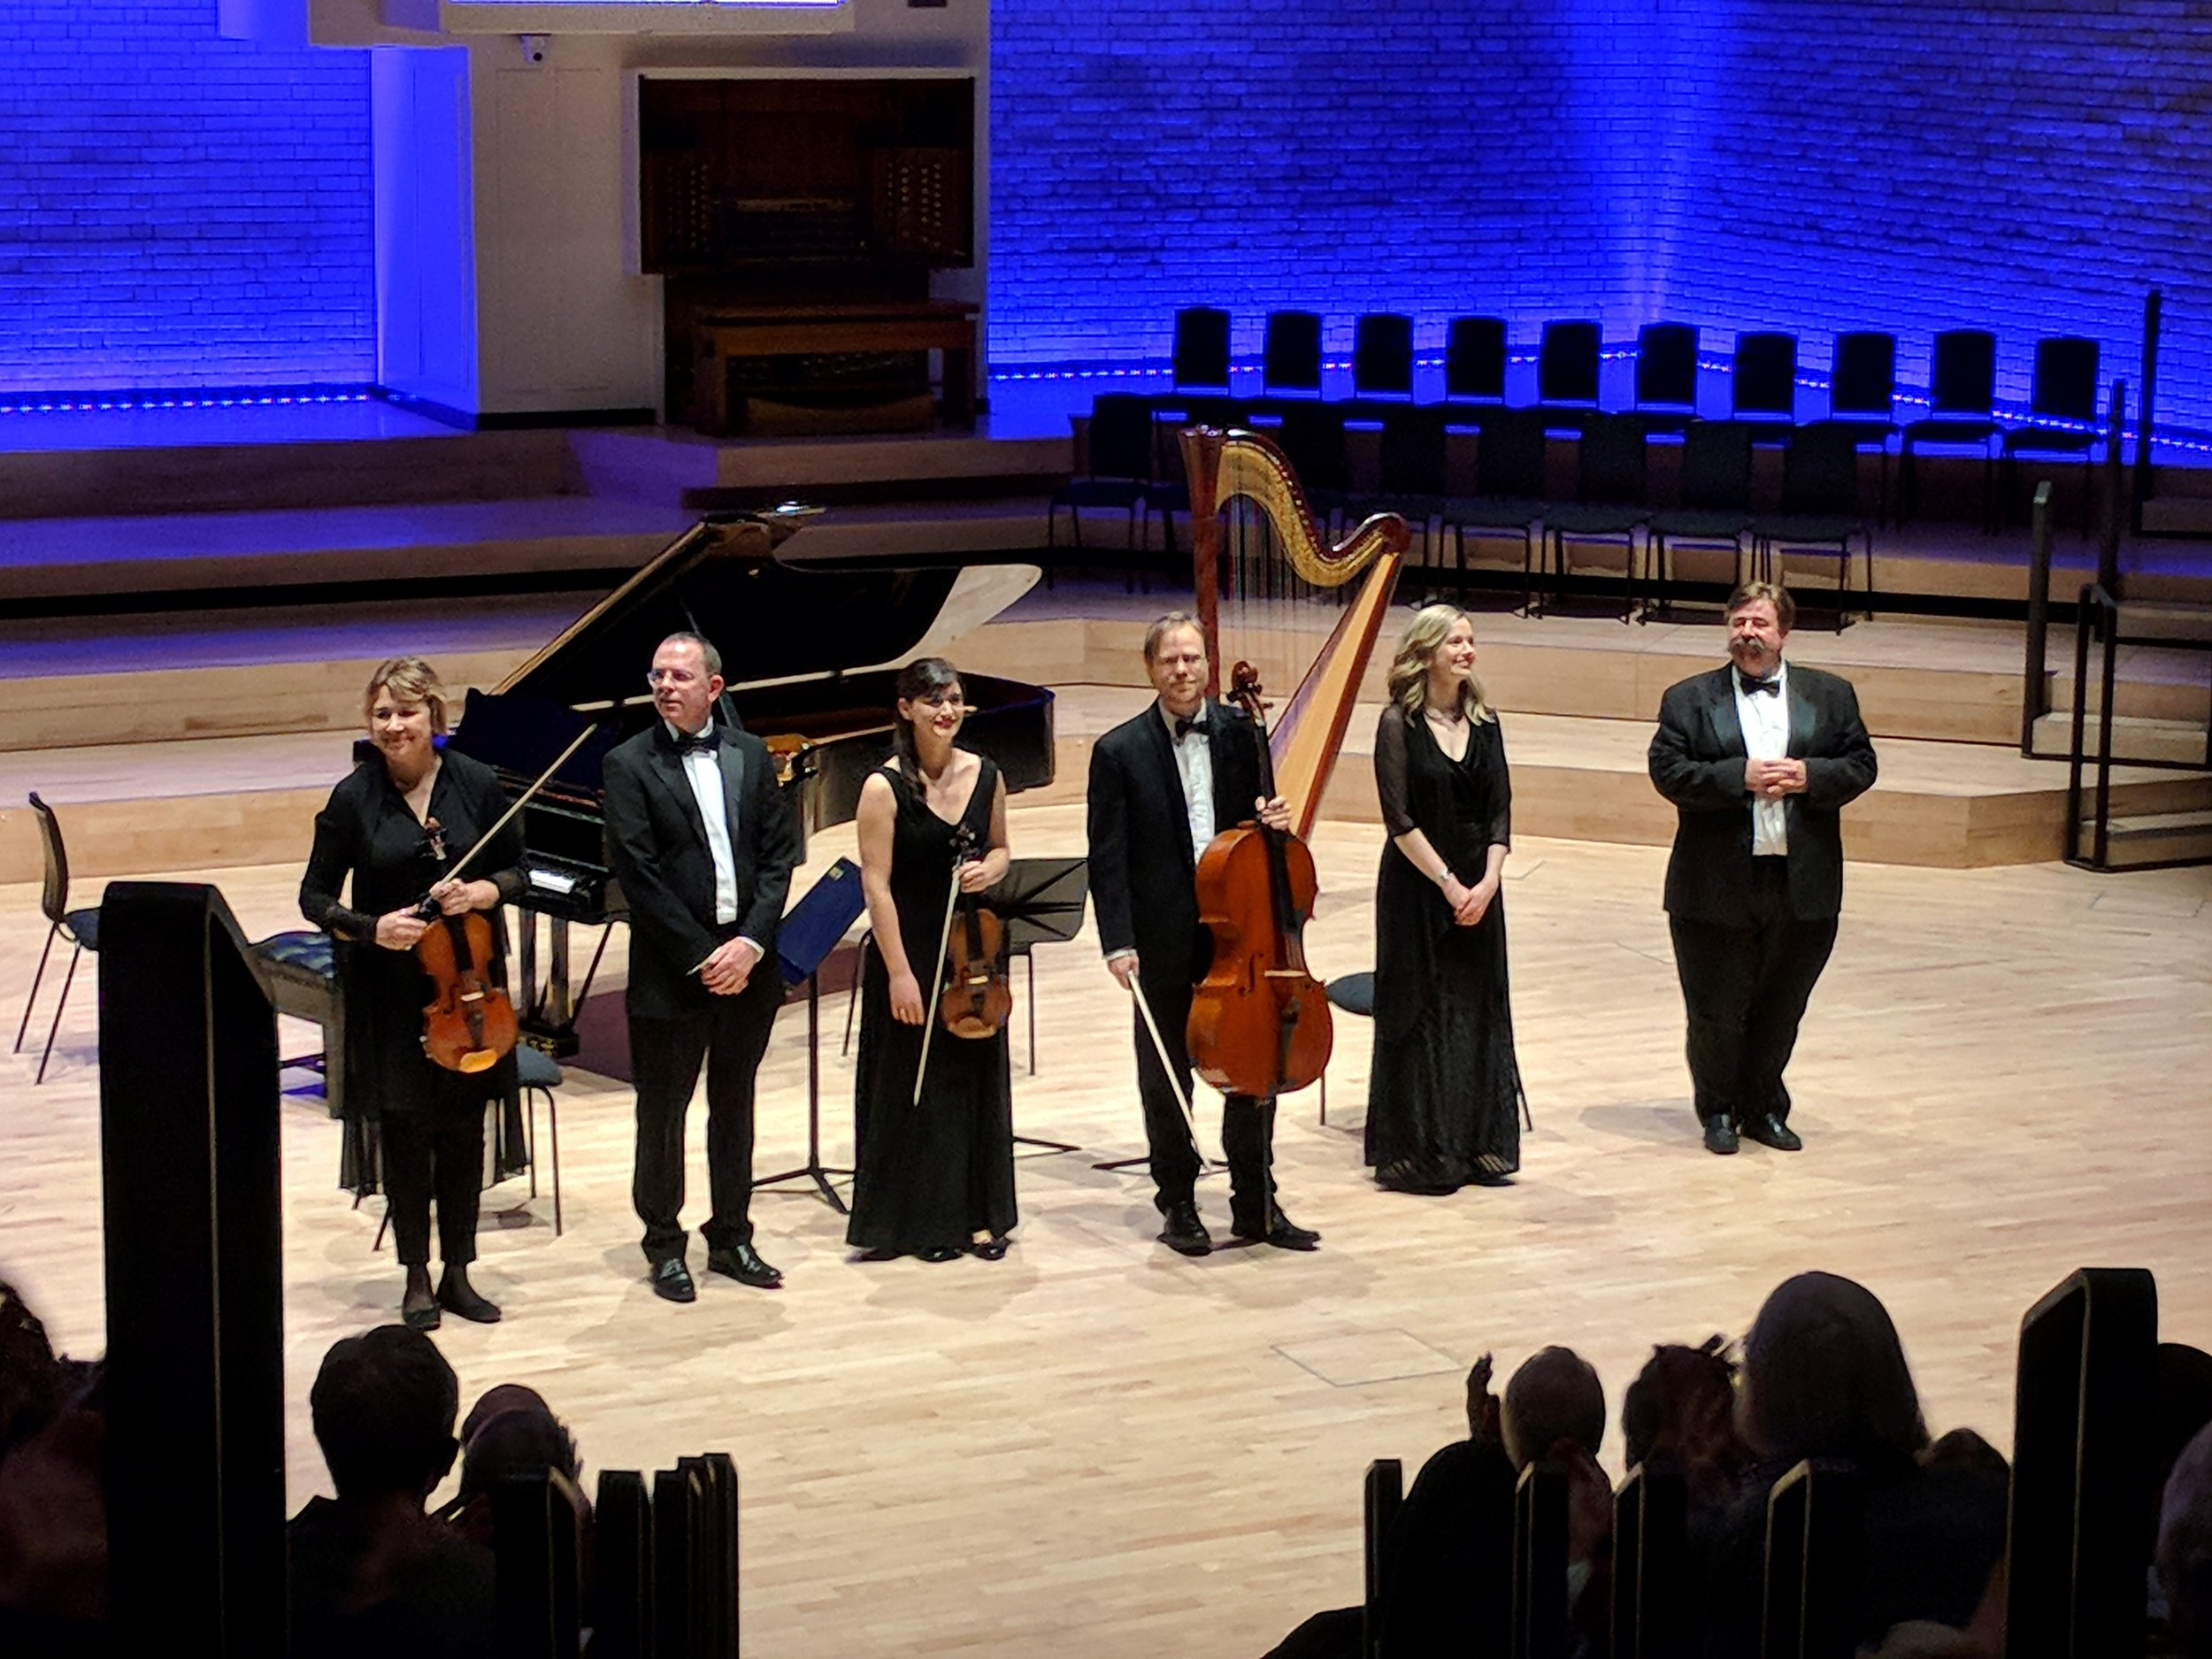 """<span style=""""color: #4060a5; font-weight: 600"""">Royal Northern College of Music, Manchester - 19 February 2018</span>"""